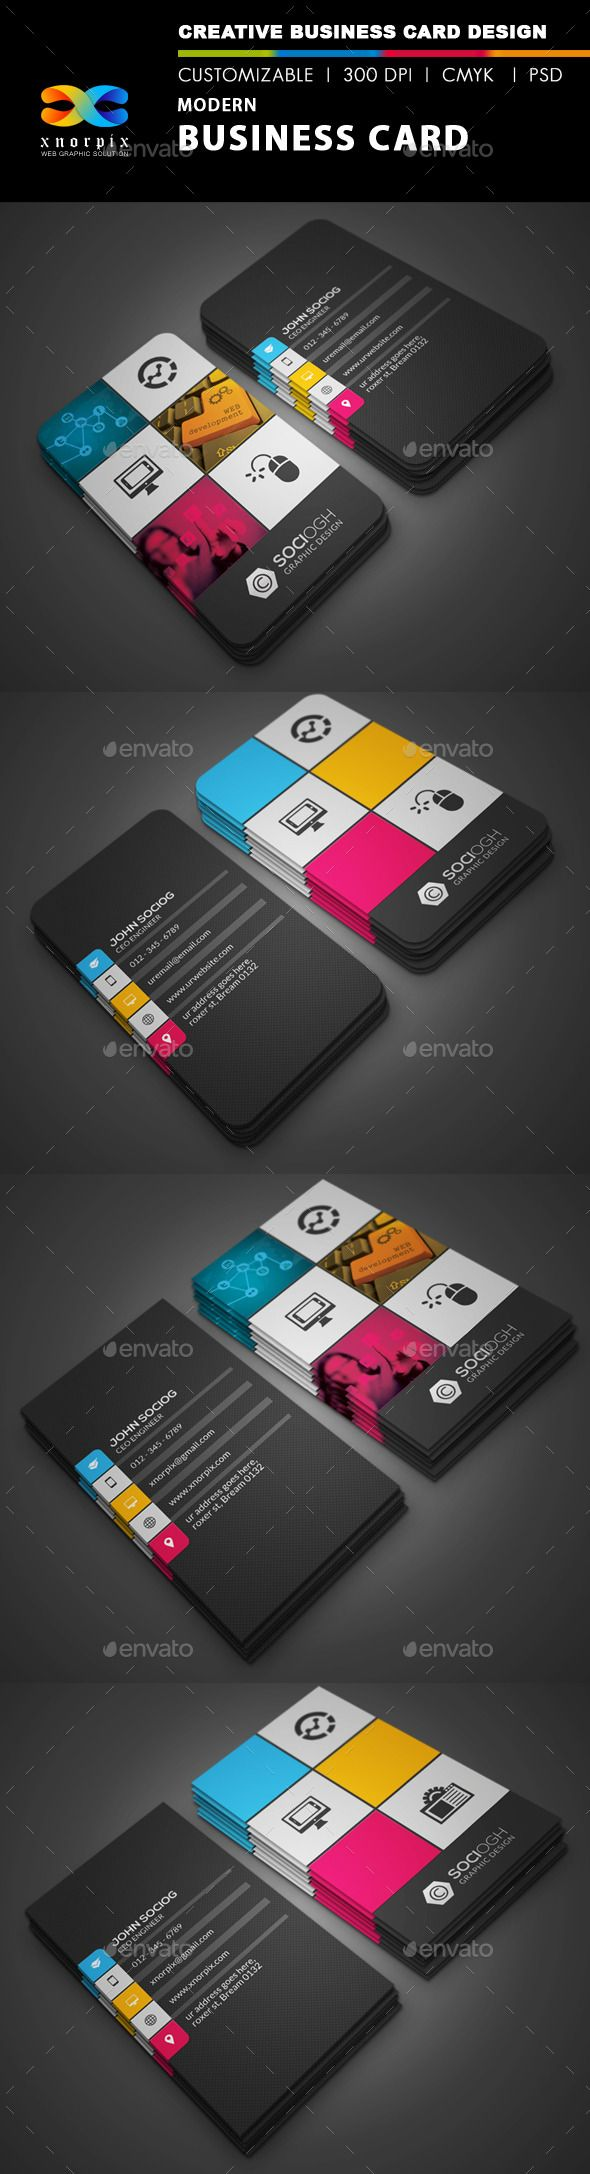 Modern Business Card #brand #business #business card • Available here → http://graphicriver.net/item/modern-business-card/3025368?s_rank=164&ref=pxcr